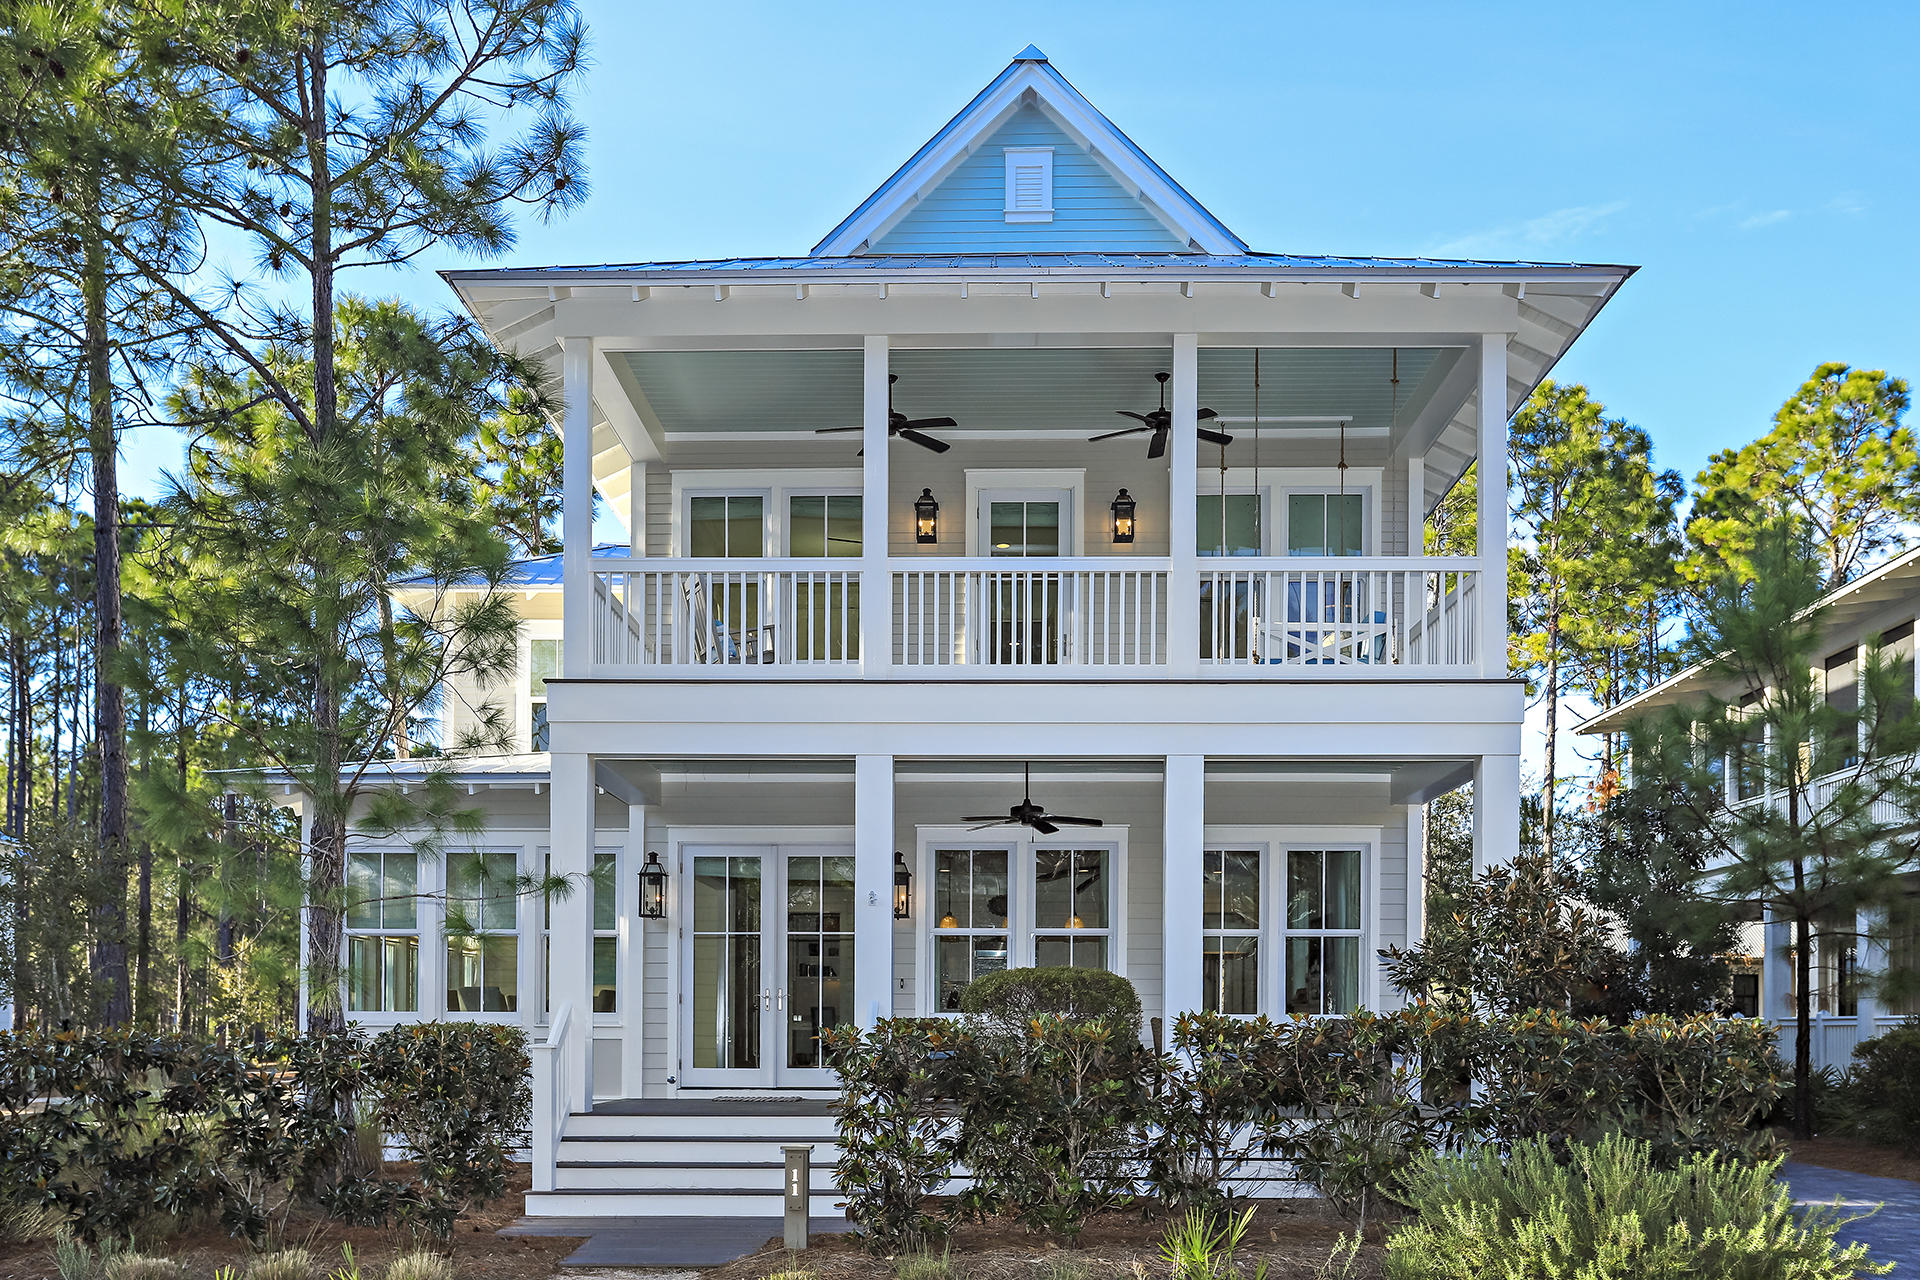 Photo of home for sale at 11 Calamint, Santa Rosa Beach FL